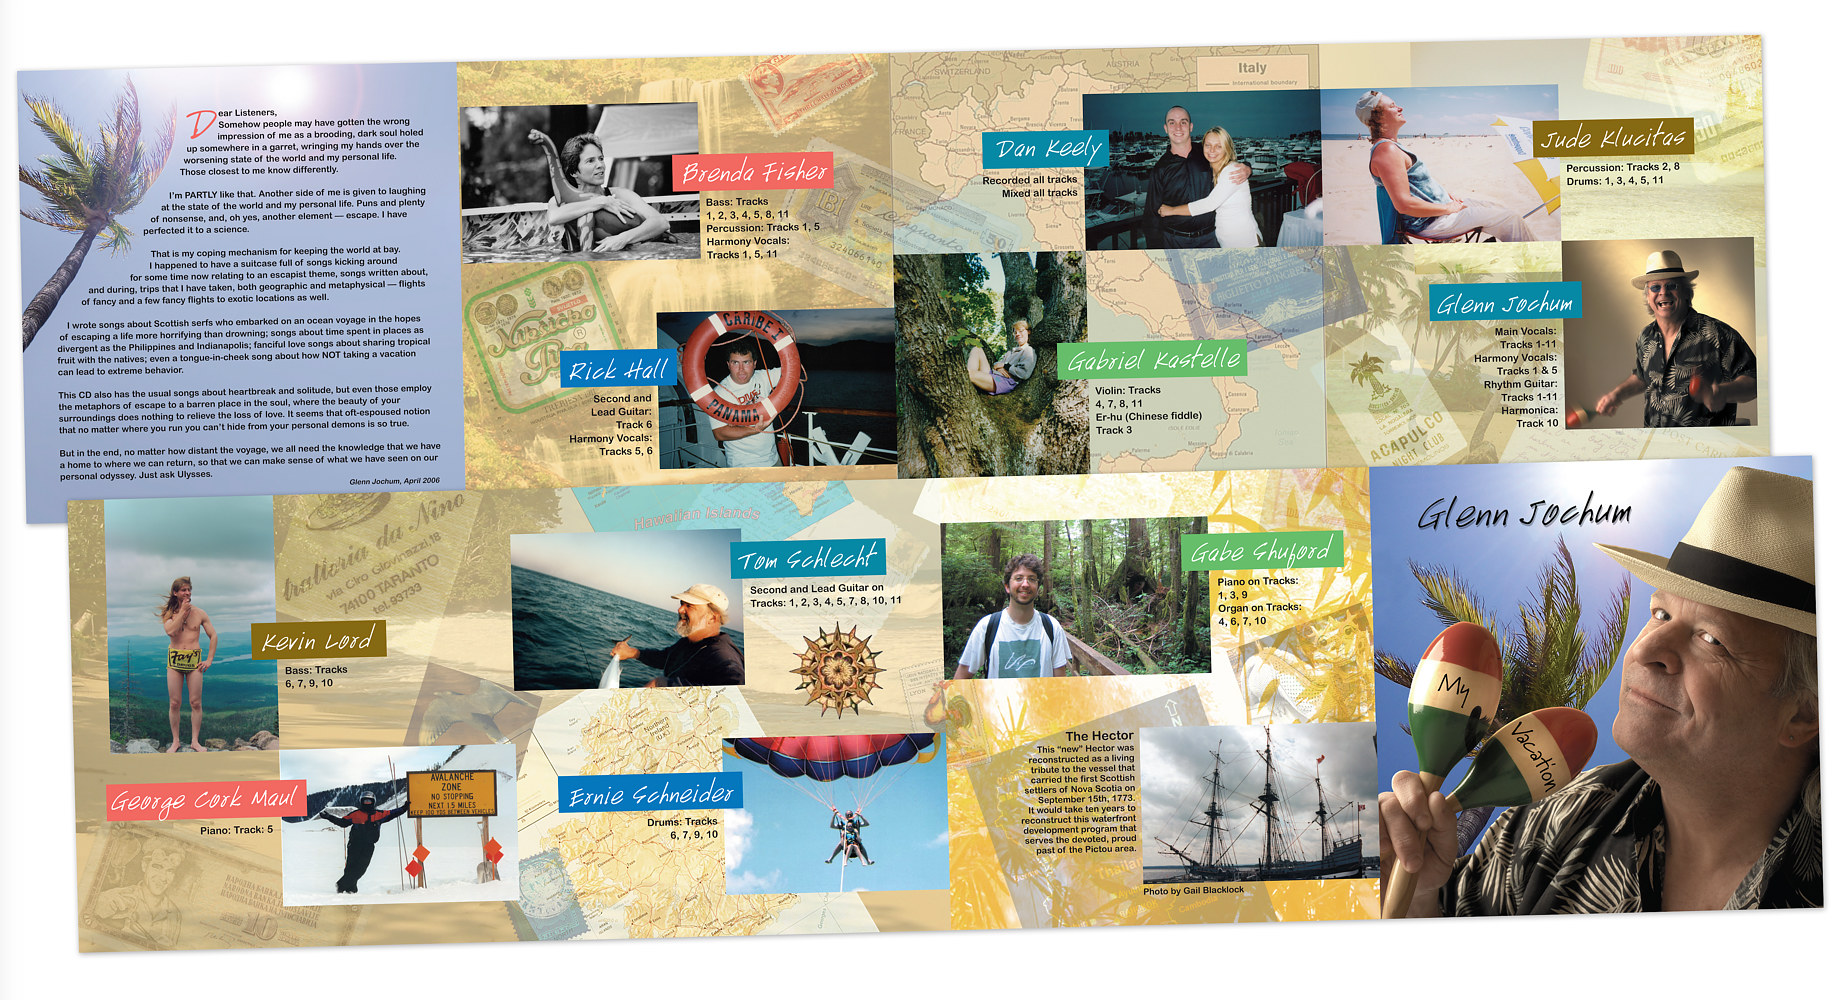 My Vacation CD Interior by Steve Ferris